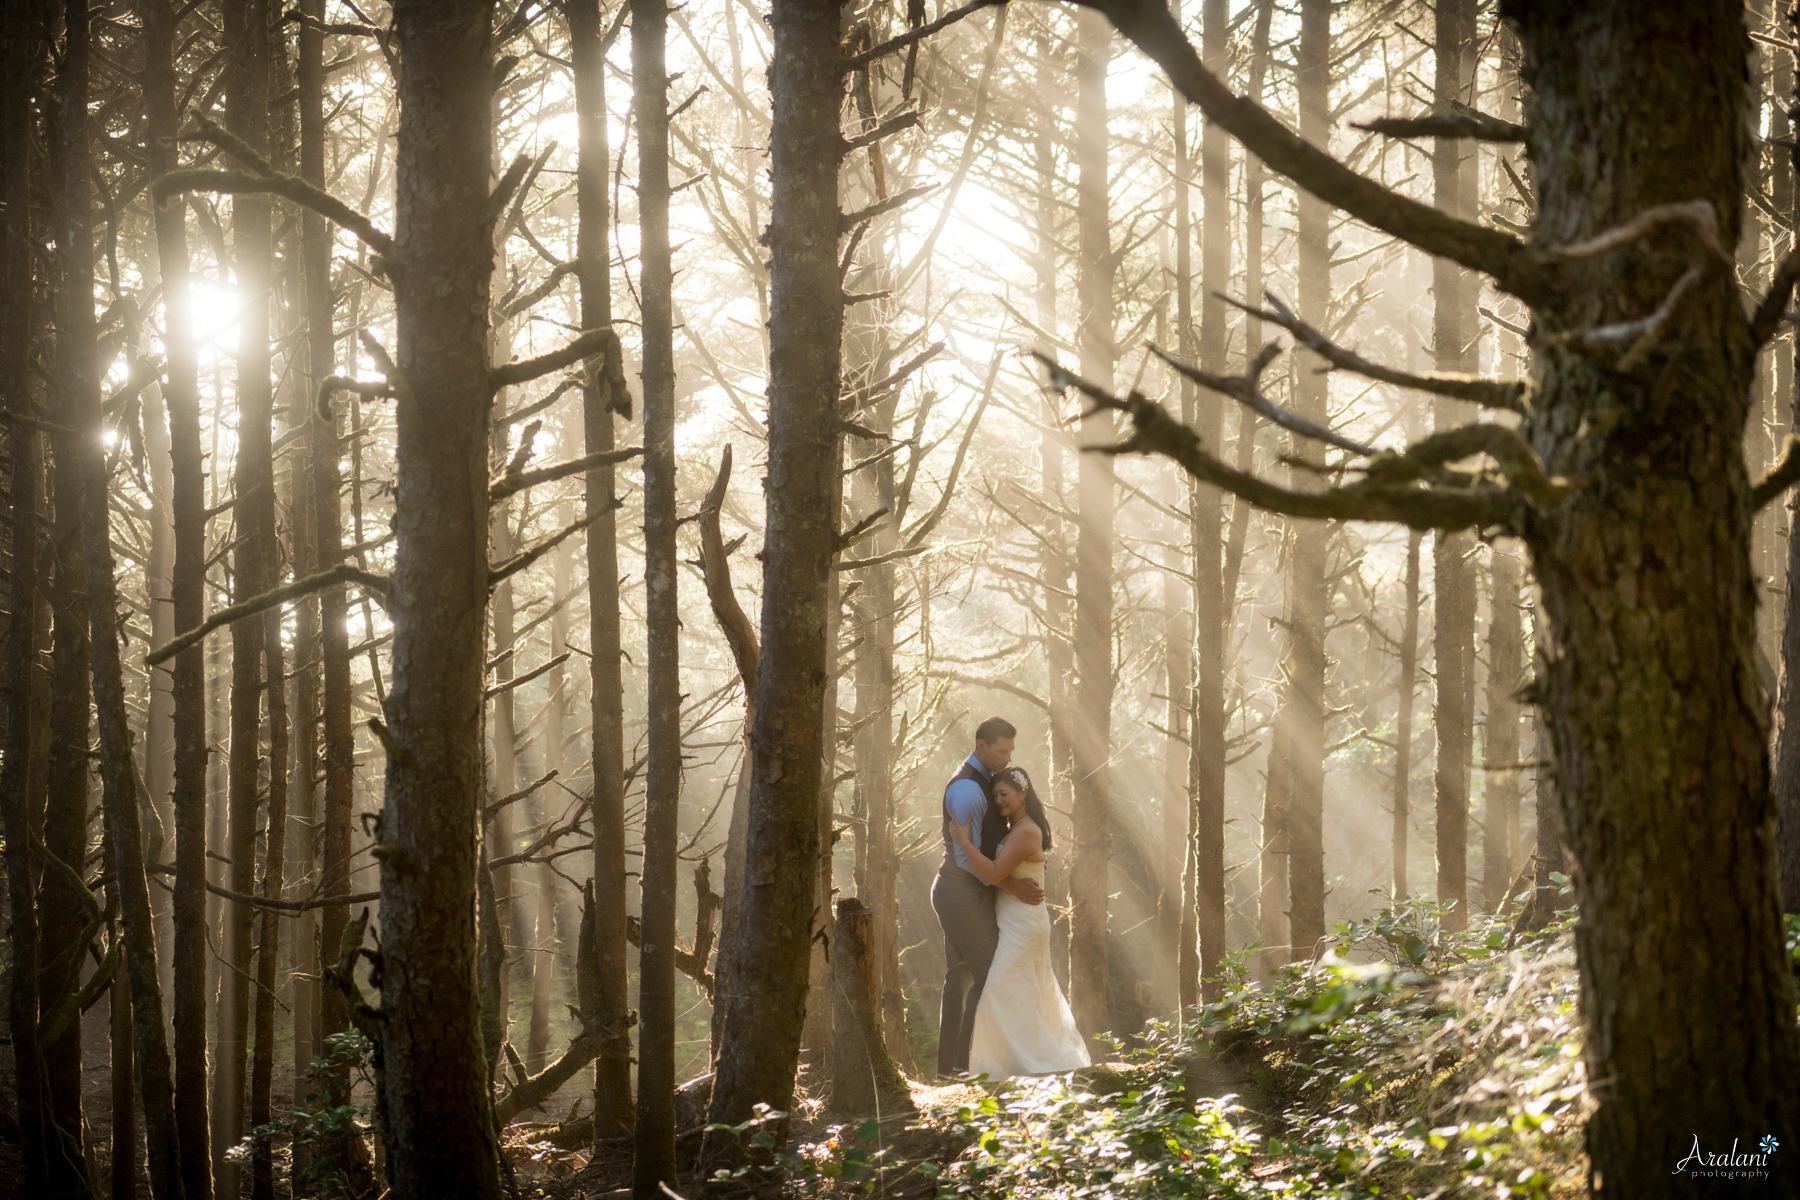 Portland_Elopement_Photographer004.jpg